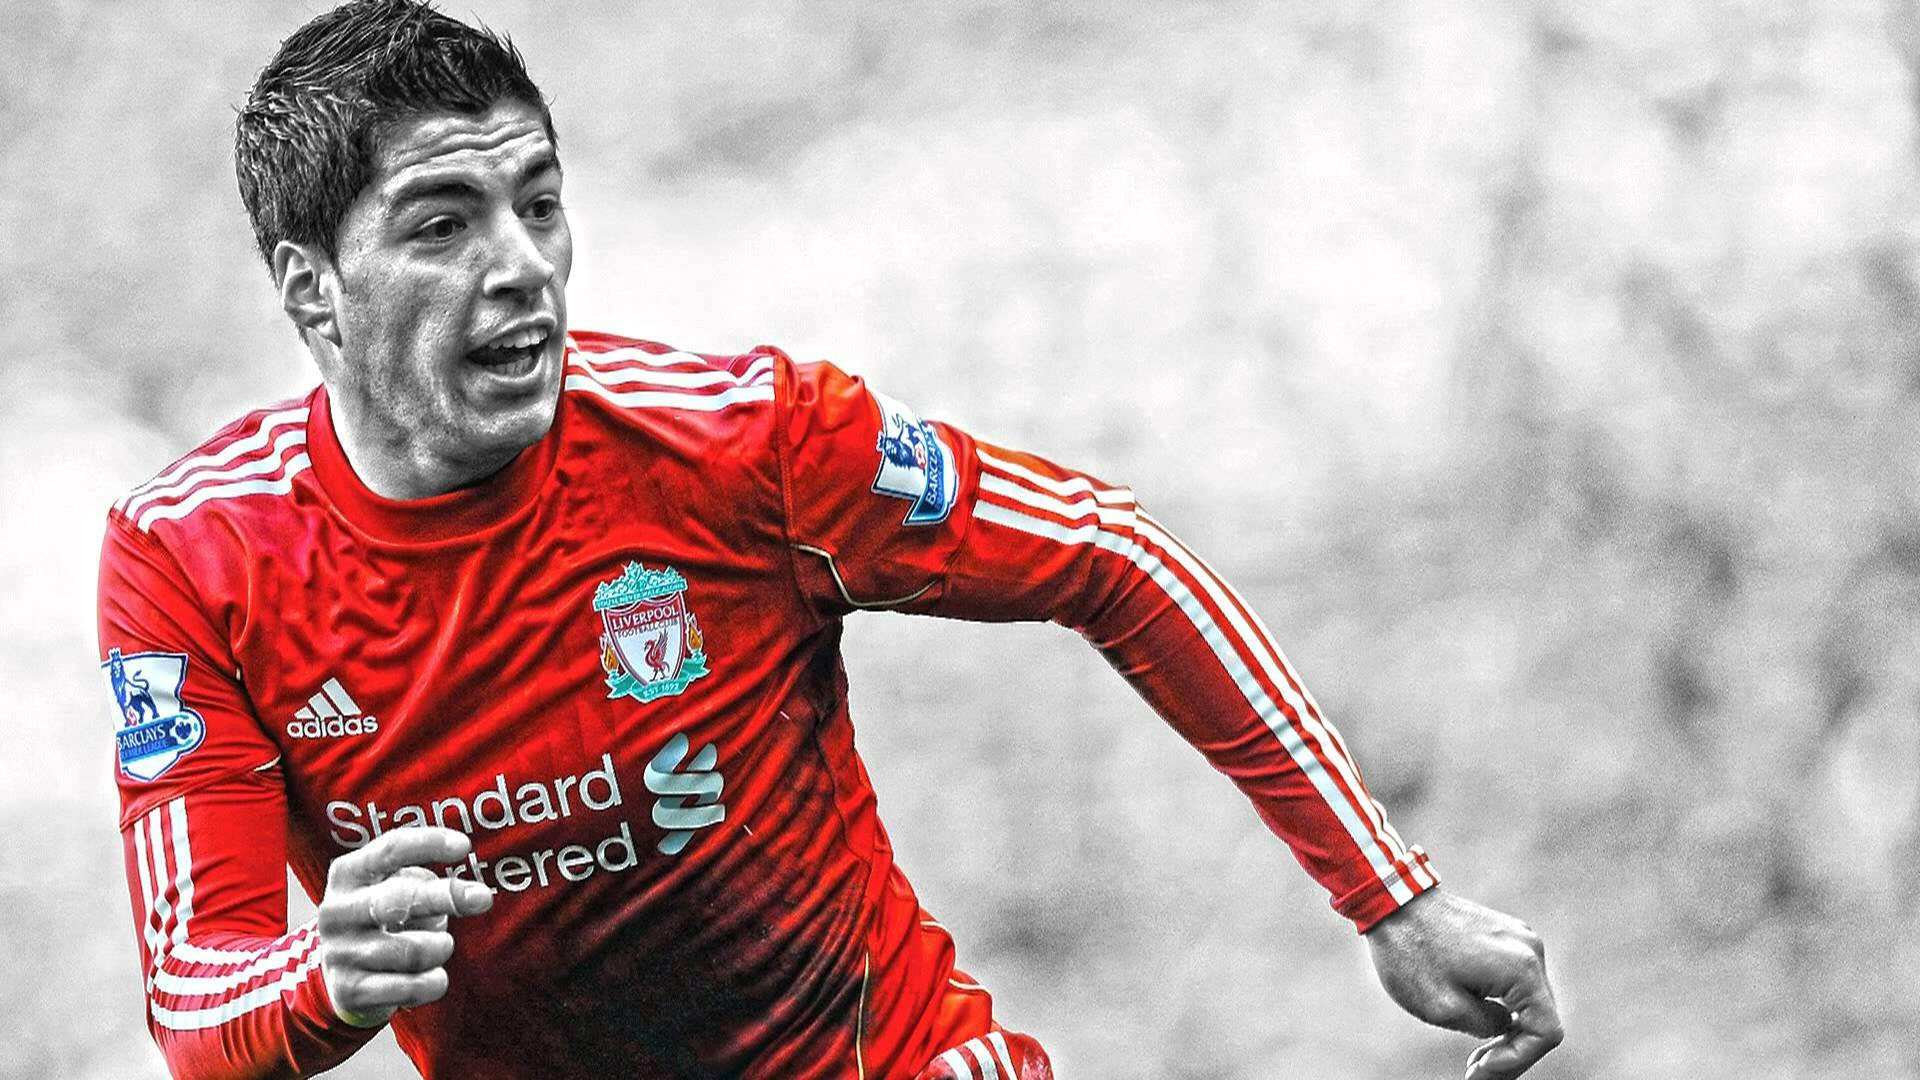 Luis Suarez Desktop Wallpapers in HD Daily Backgrounds in HD 1920x1080